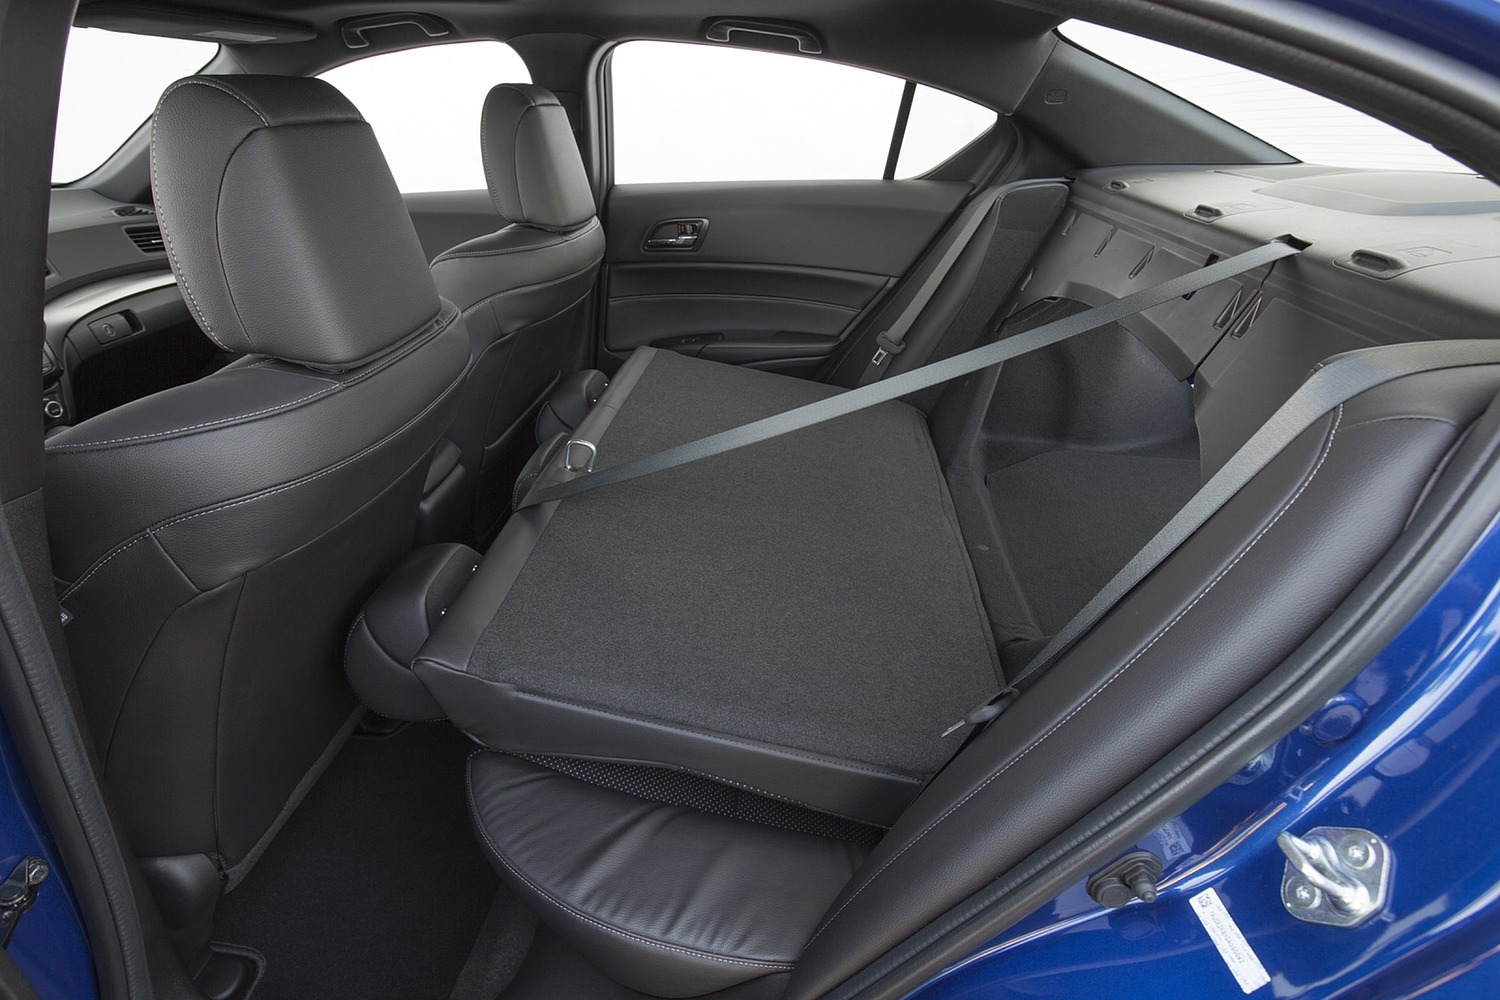 Acura ILX Technology Plus and A-SPEC Packages Sedan Rear Seats Down (2016 model year shown)